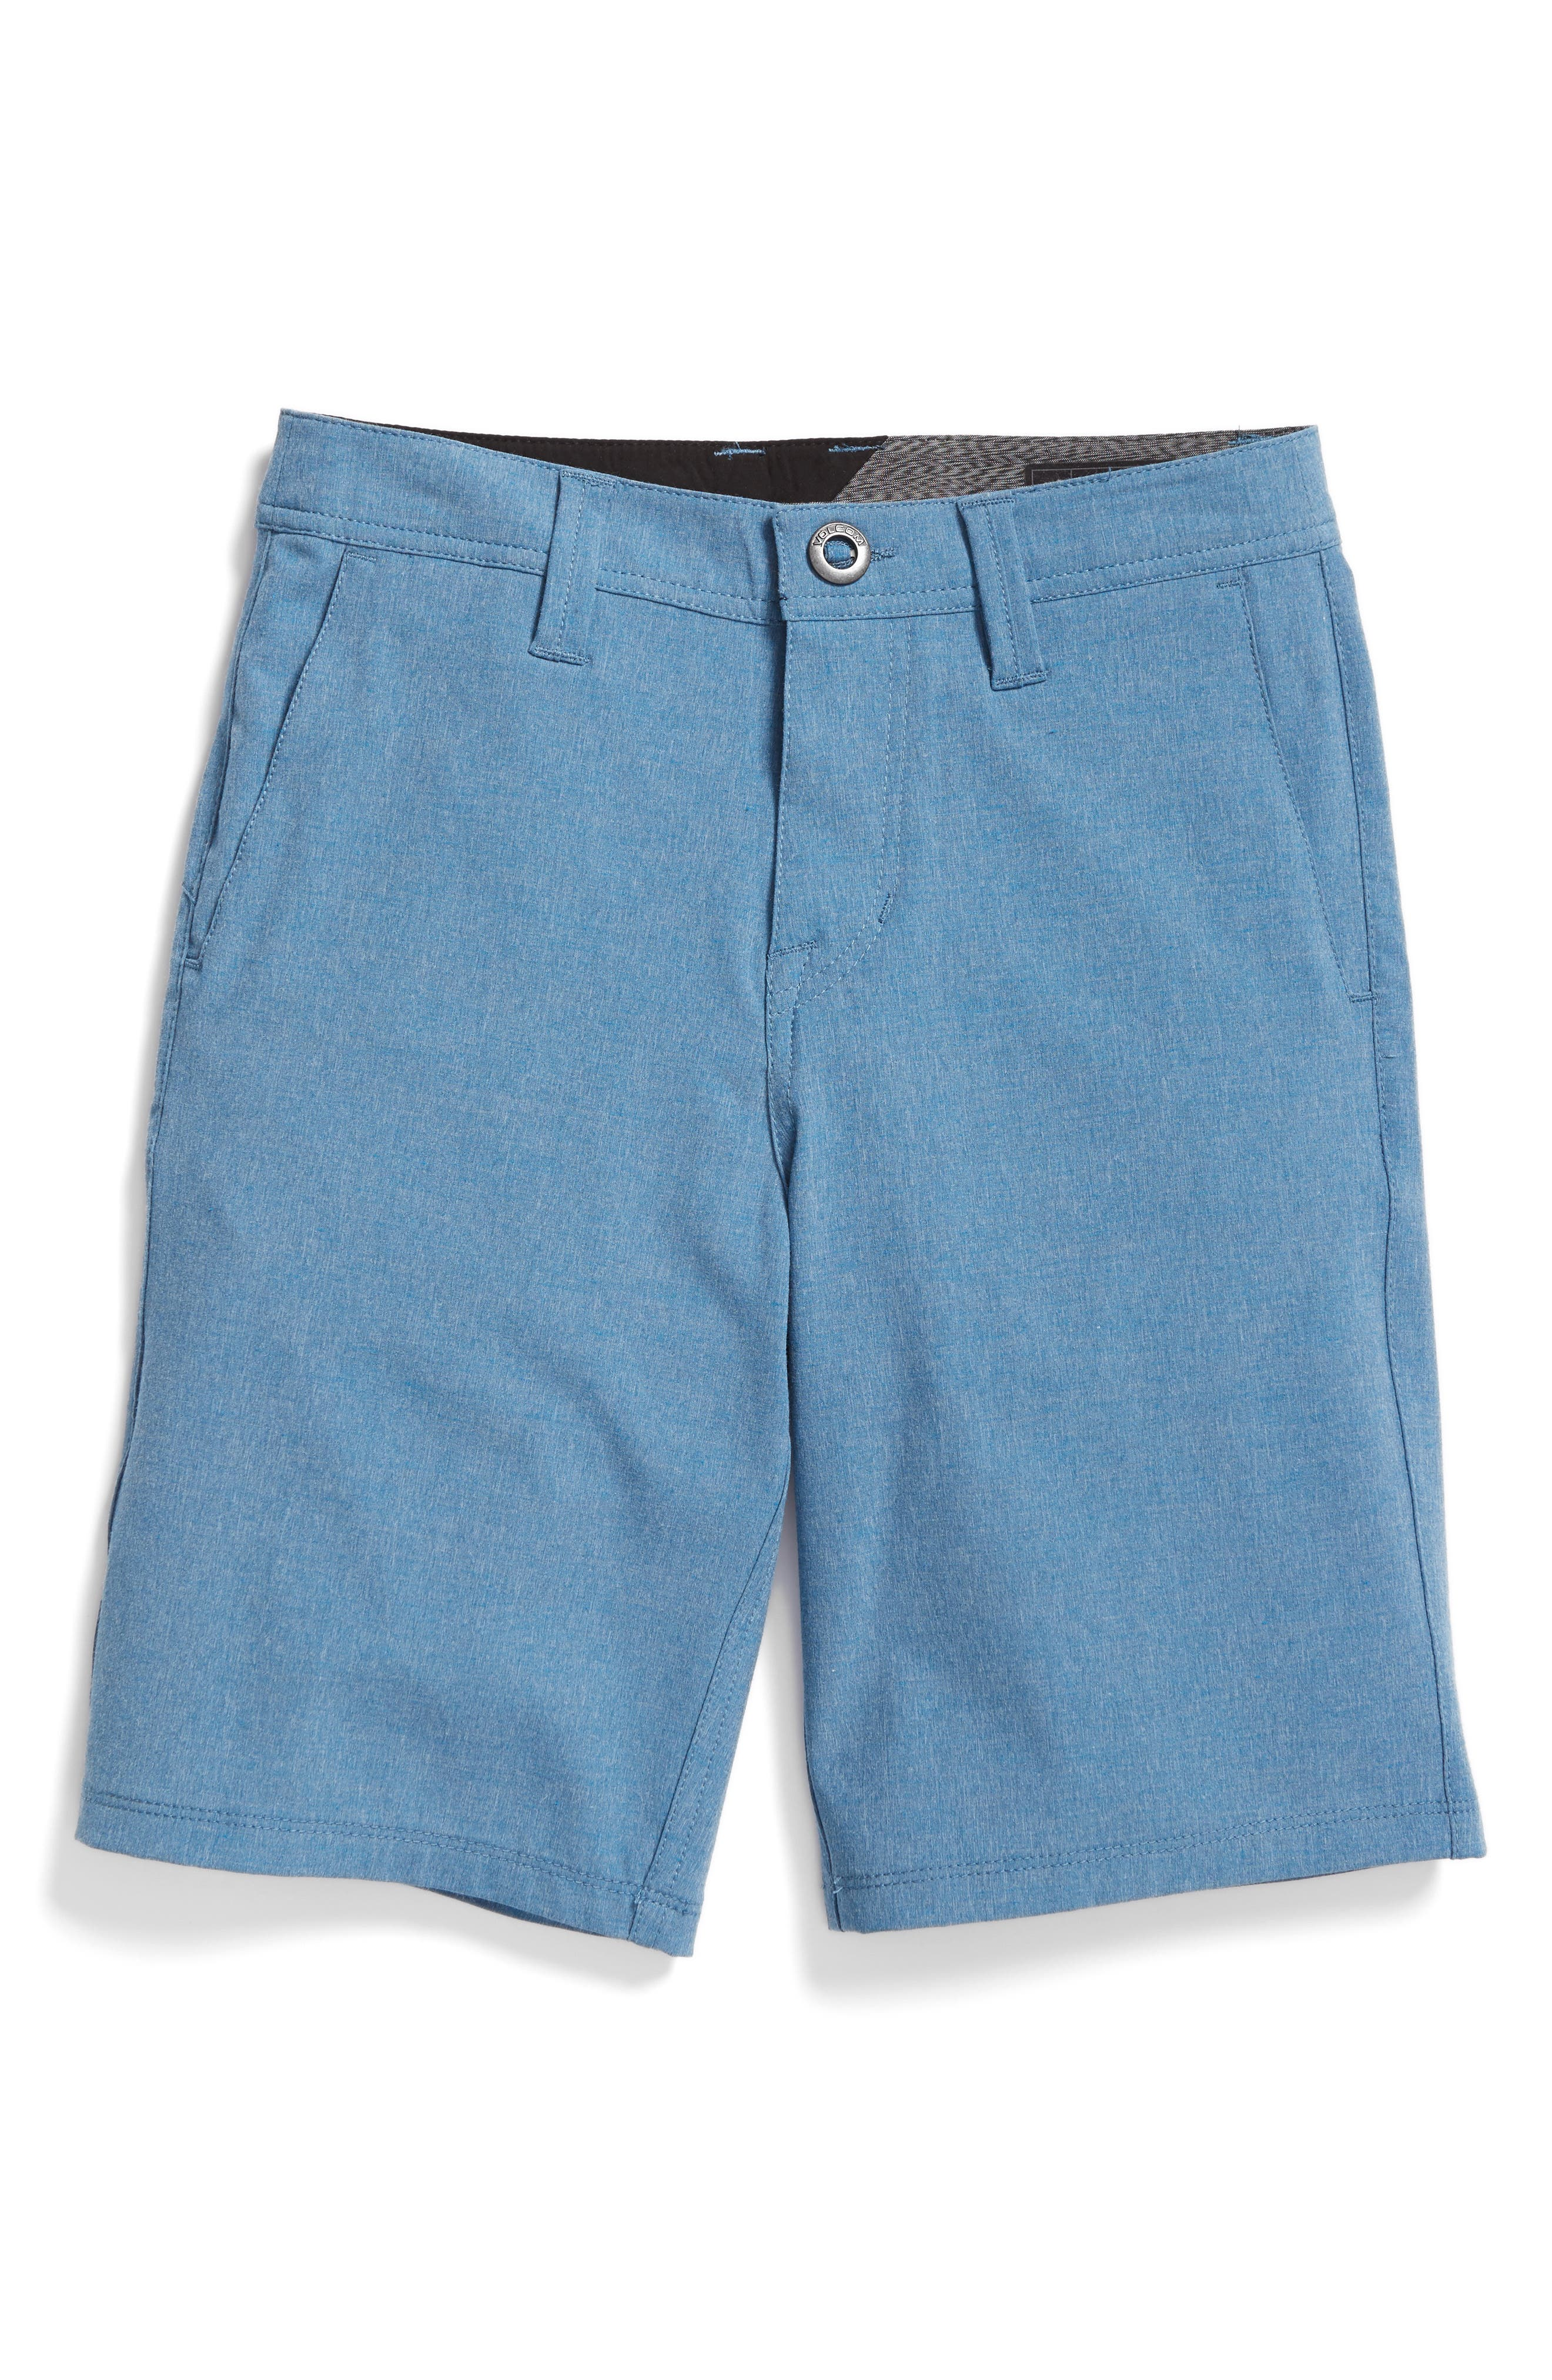 Alternate Image 1 Selected - Volcom Surf N' Turf Static Hybrid Shorts (Toddler Boys, Little Boys & Big Boys)